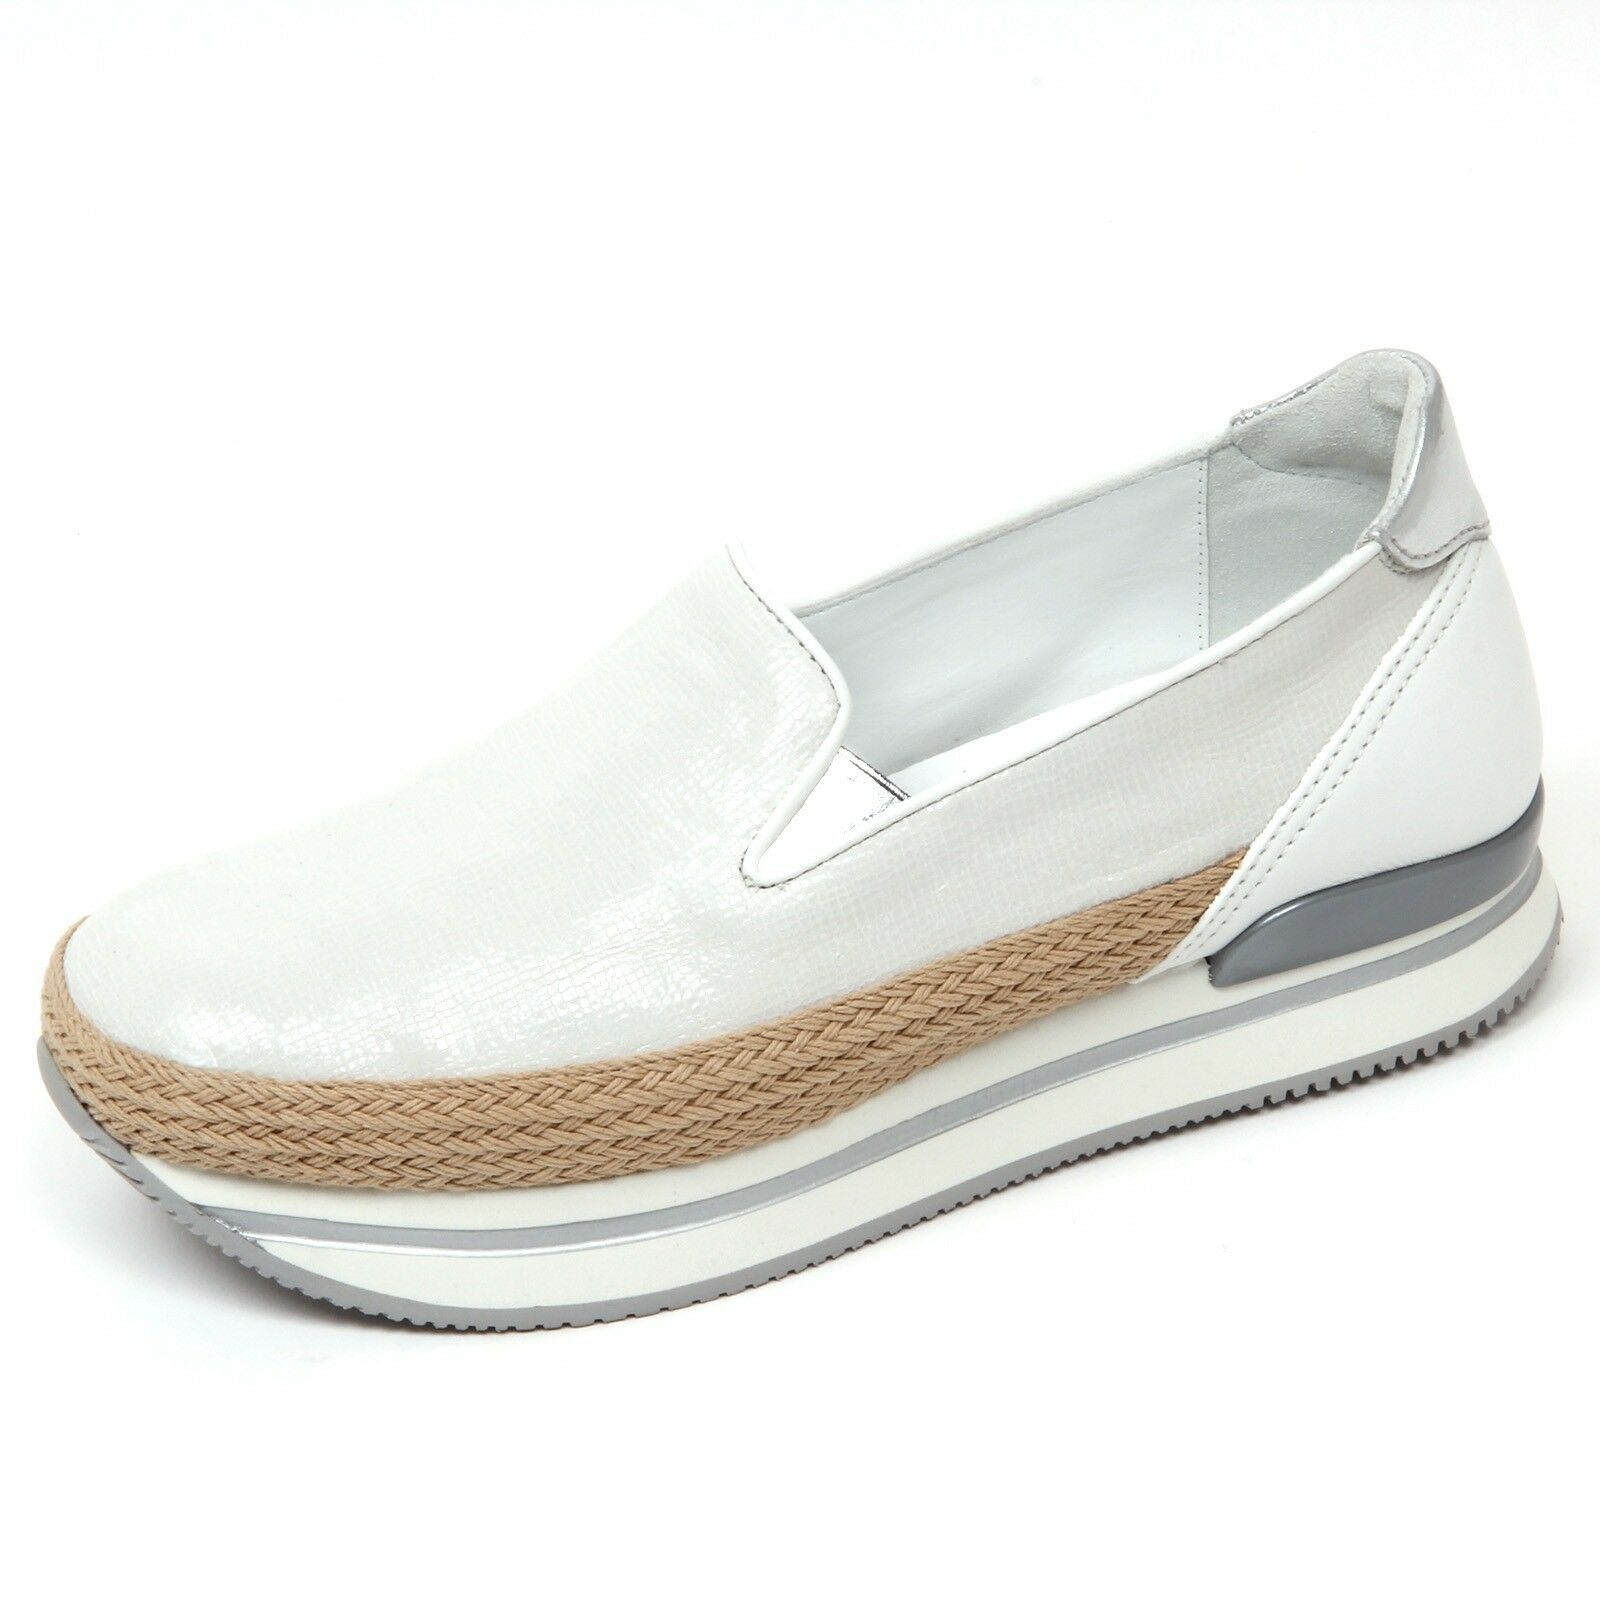 D0554 Moccasin Woman Hogan h222 shoes Slipper Silver White shoes woman